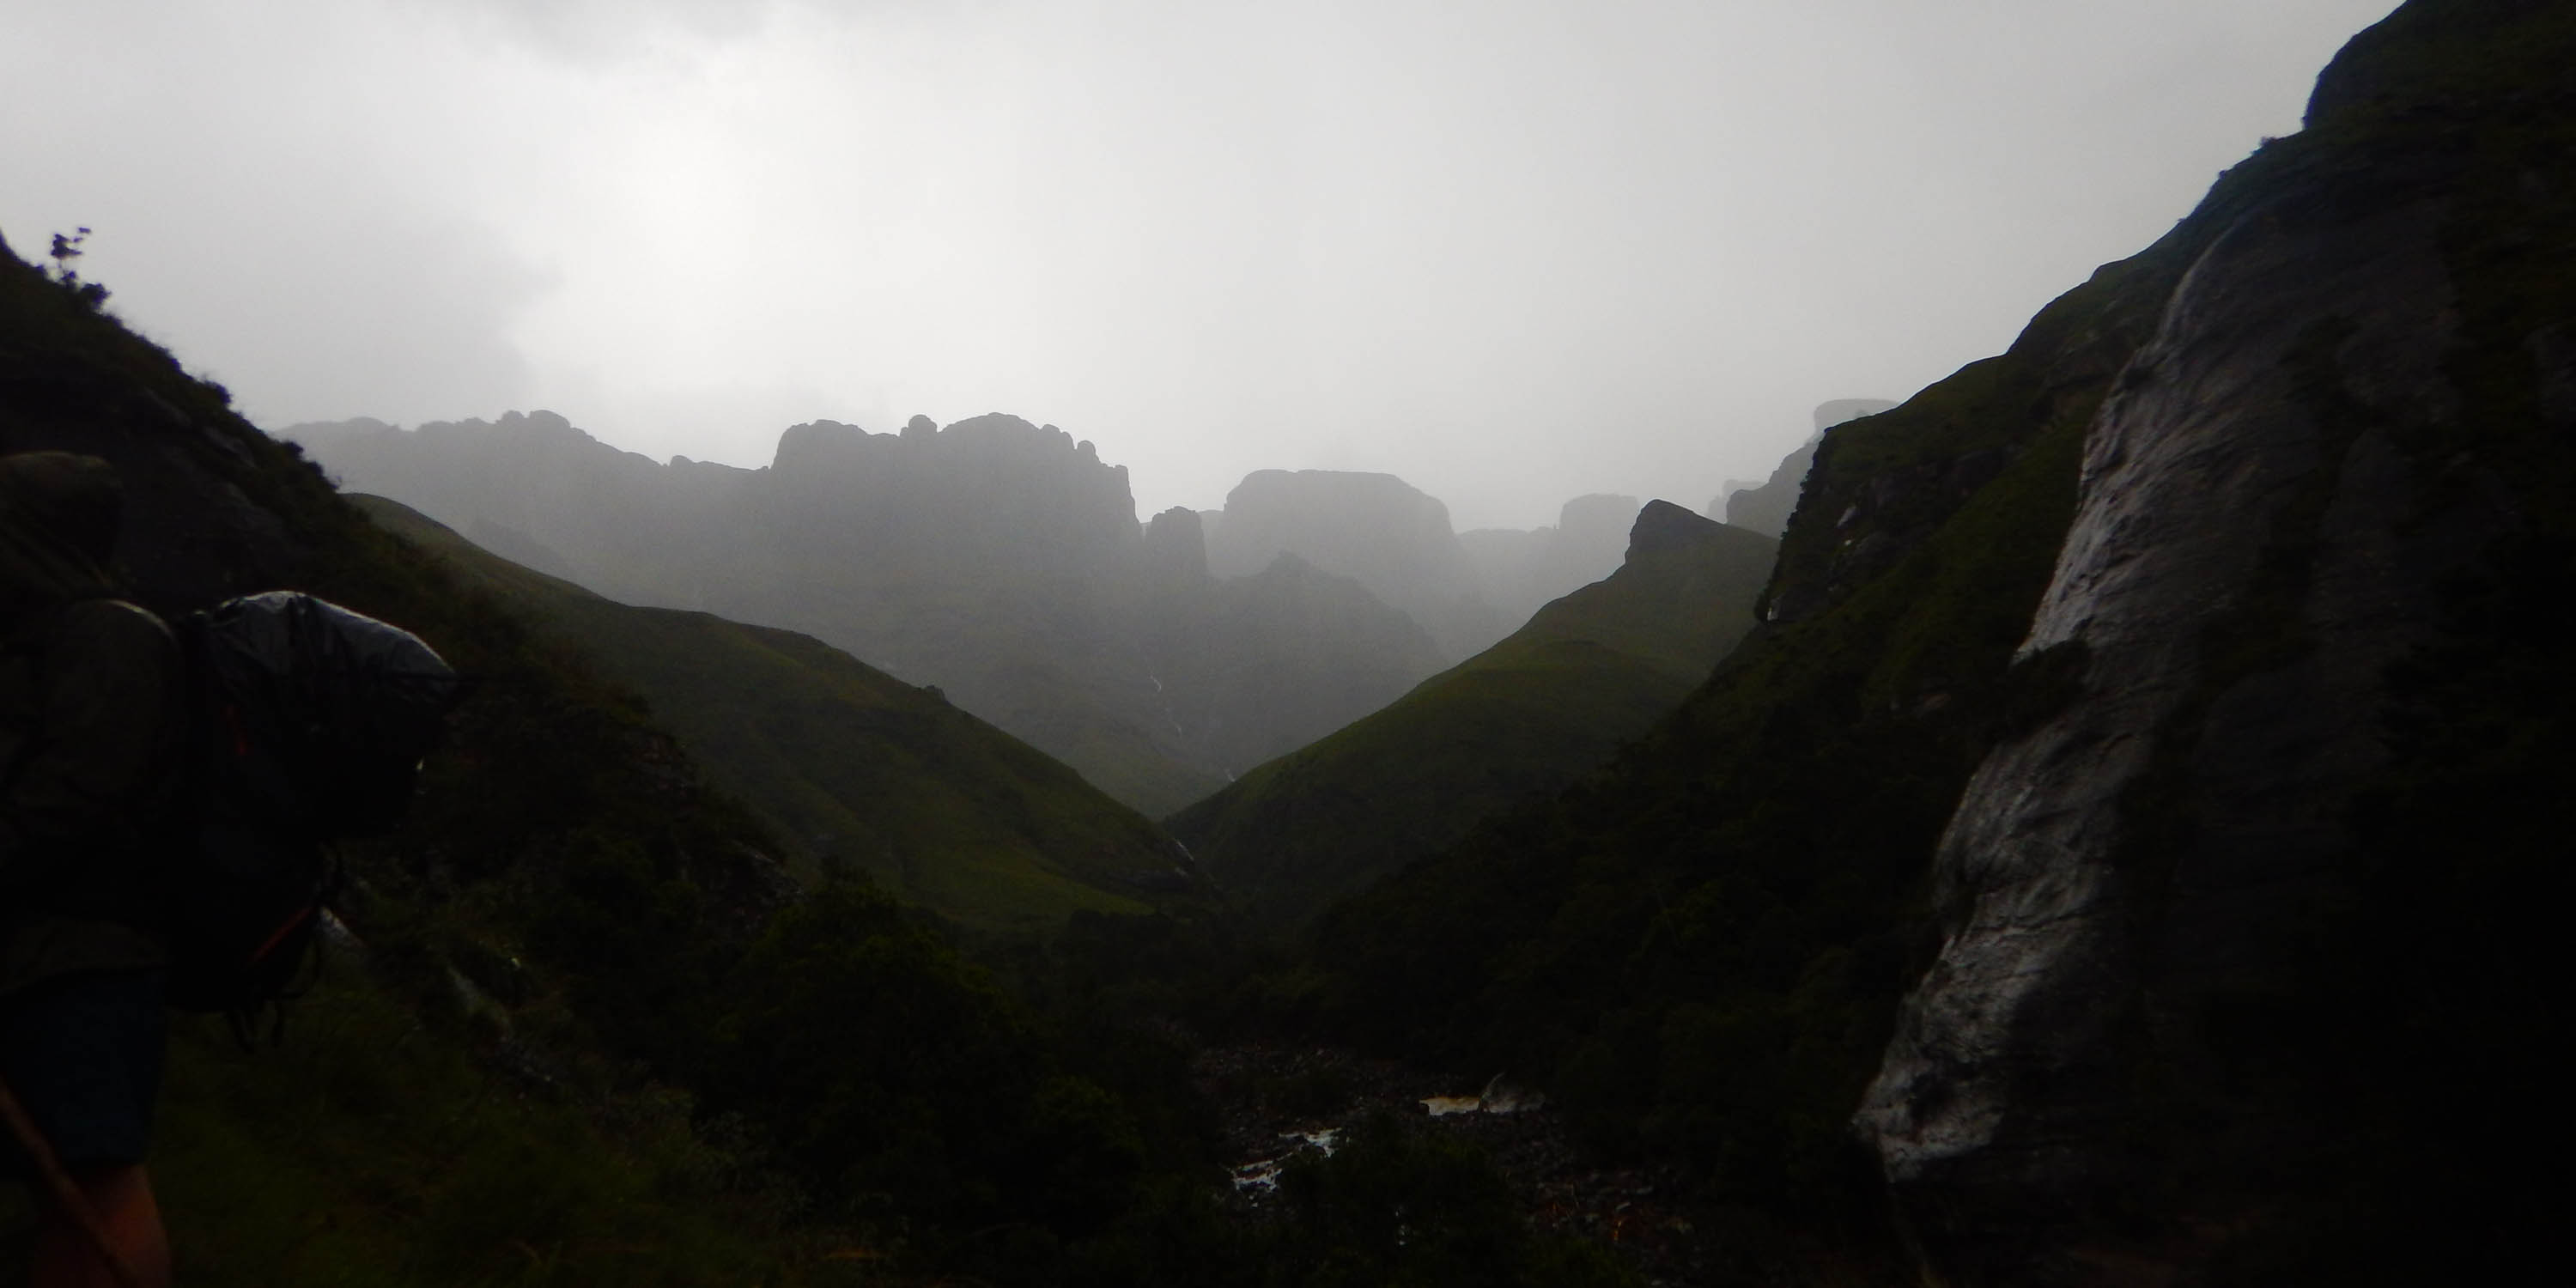 Raining in the Xeni Valley